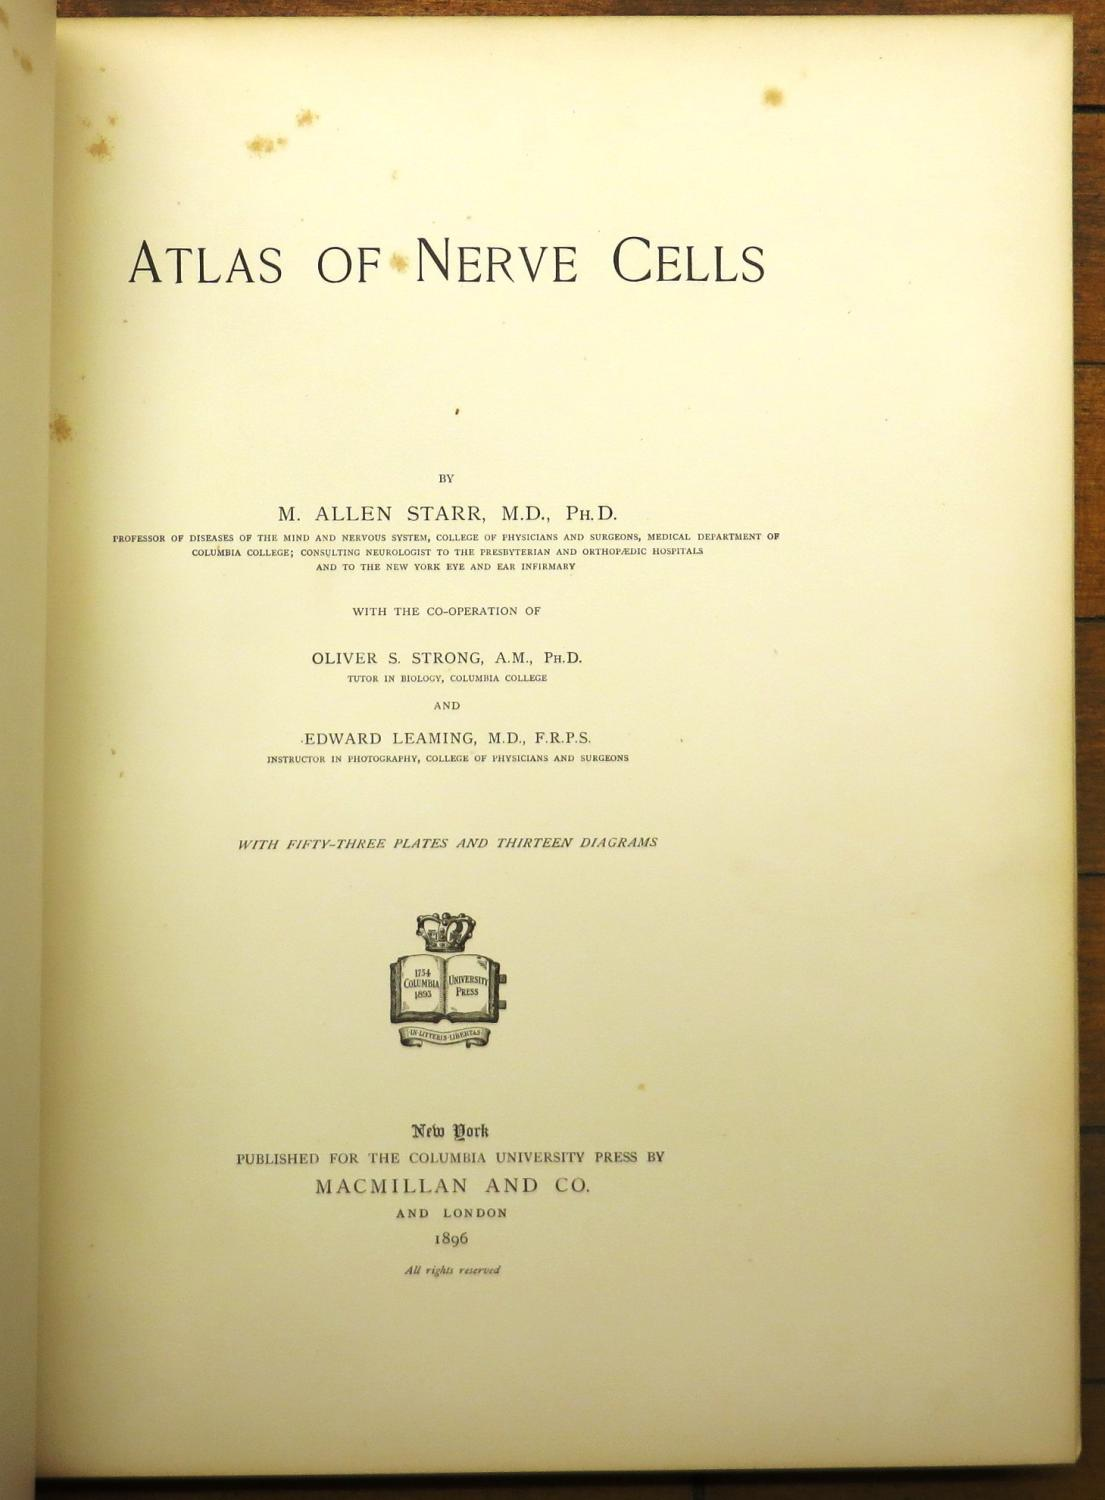 Atlas of Nerve Cells